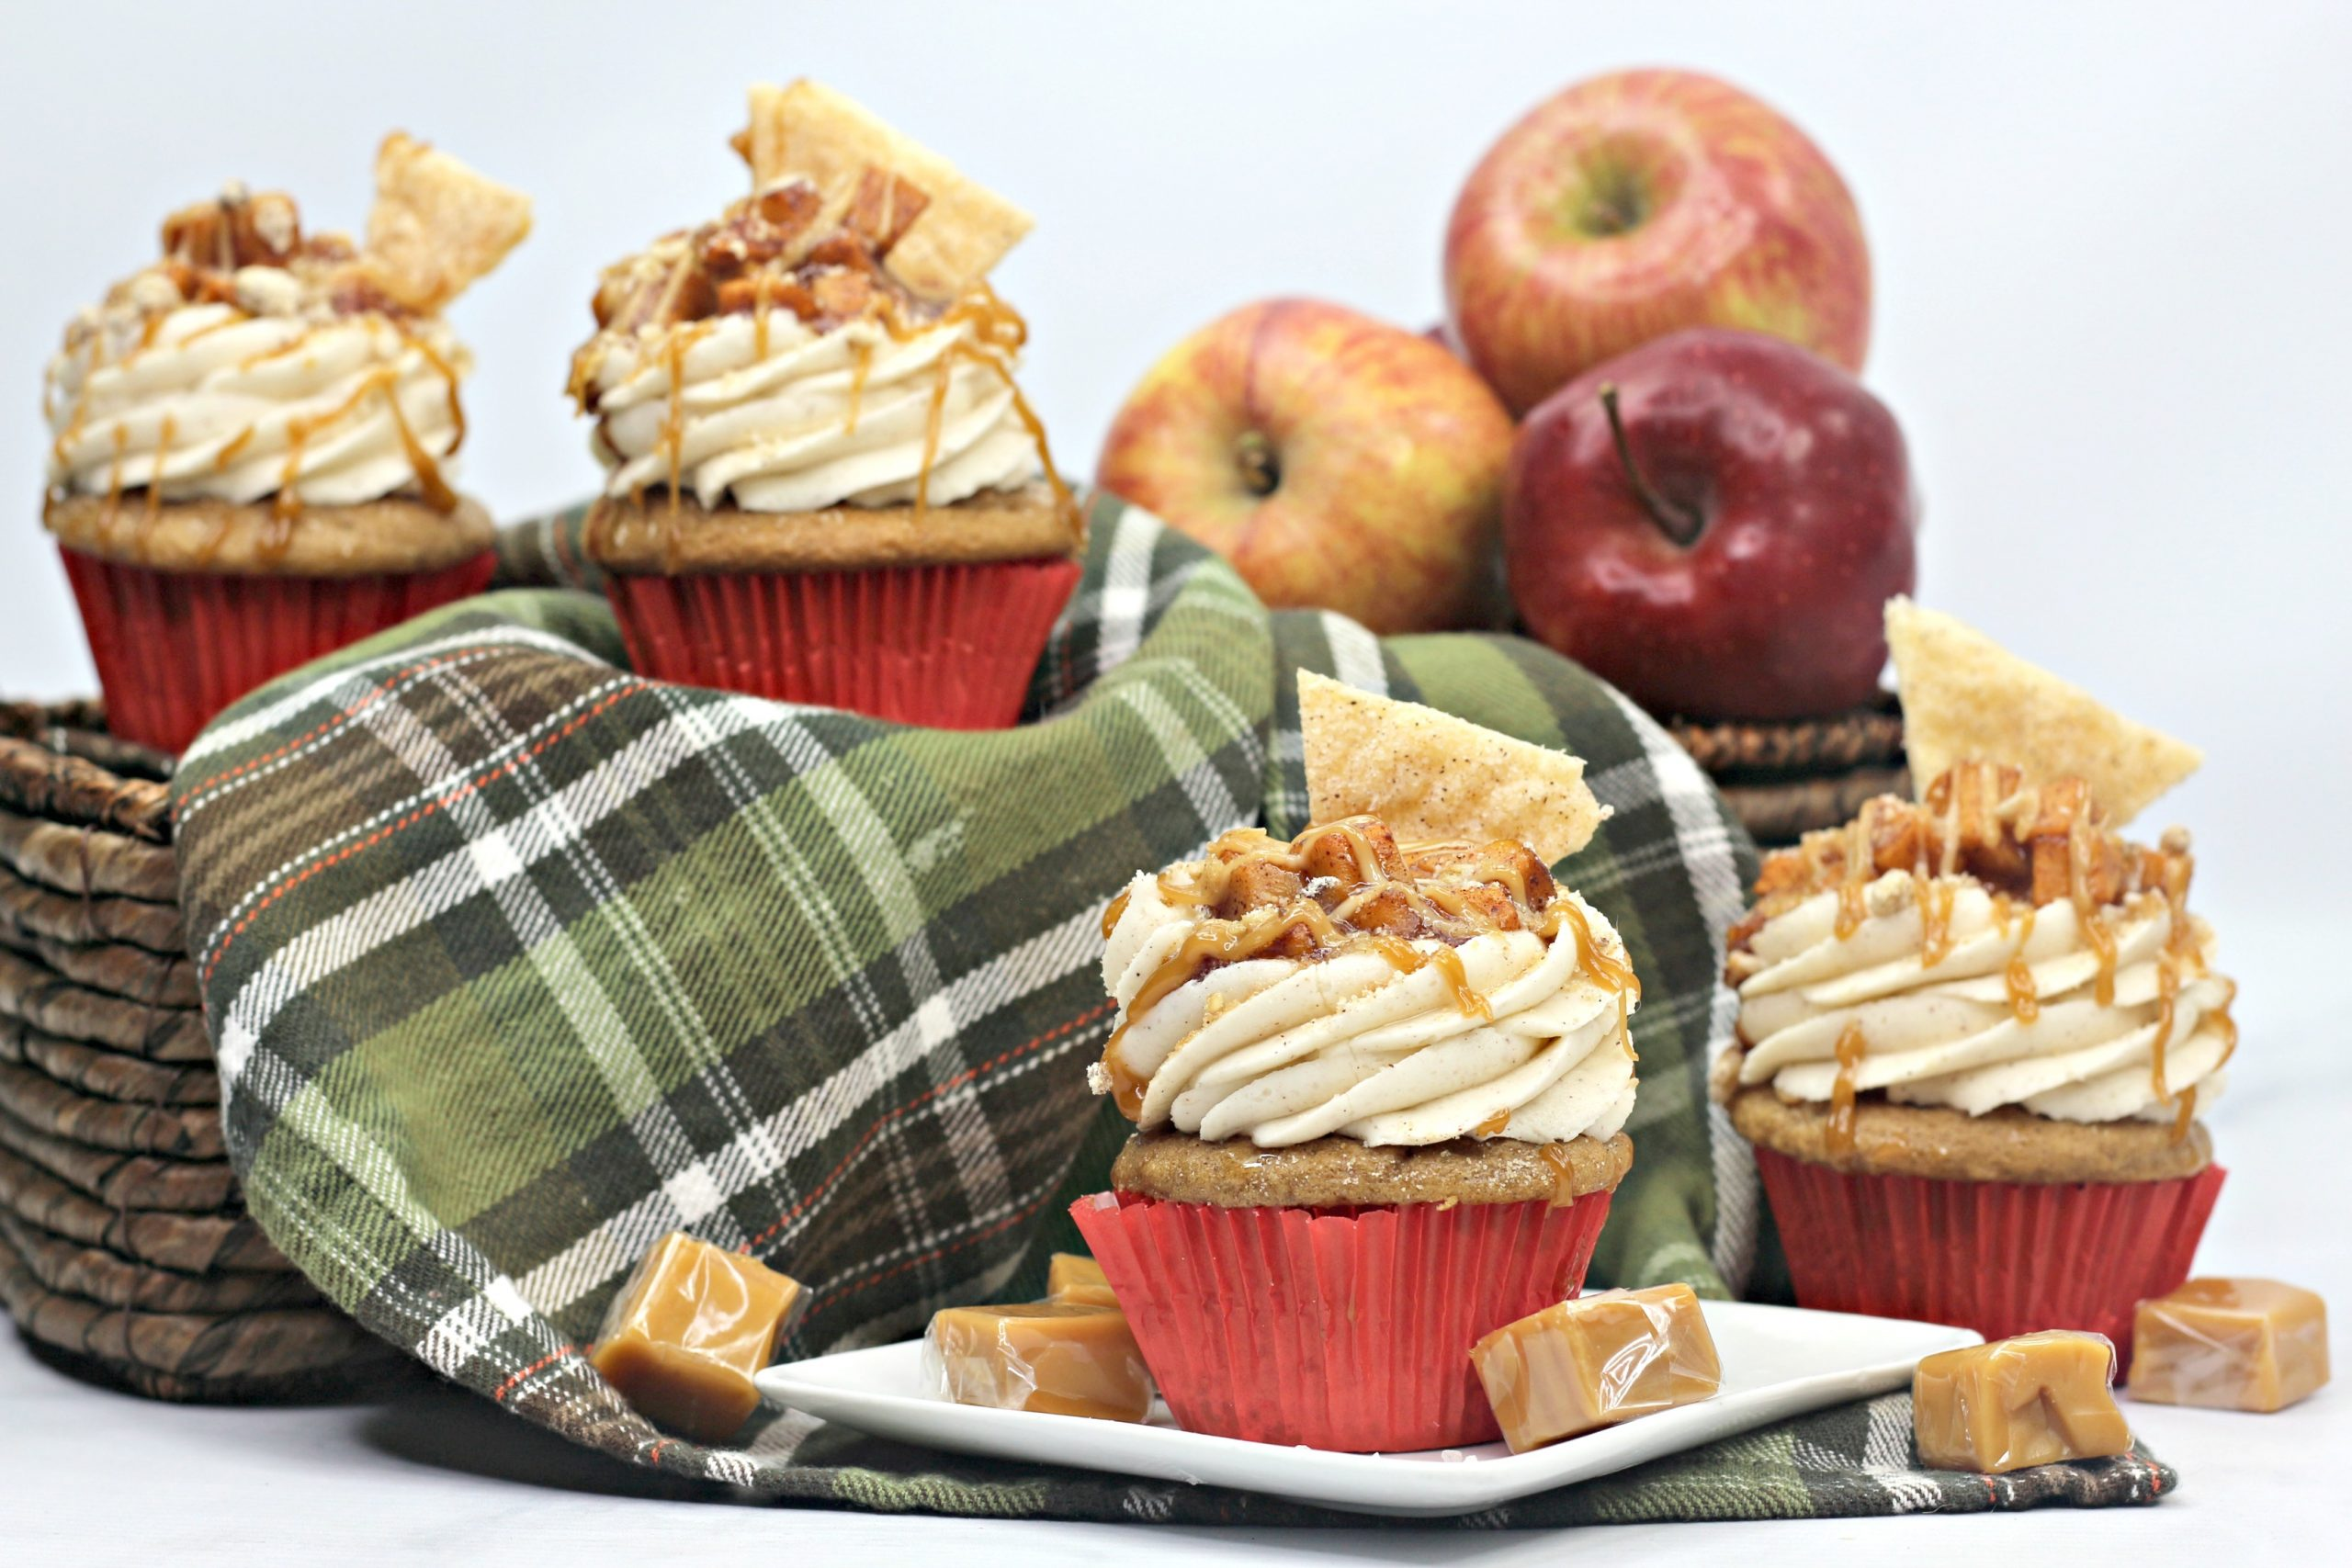 Apple Pie Cupcakes with two more behind them in a basket with more apples.